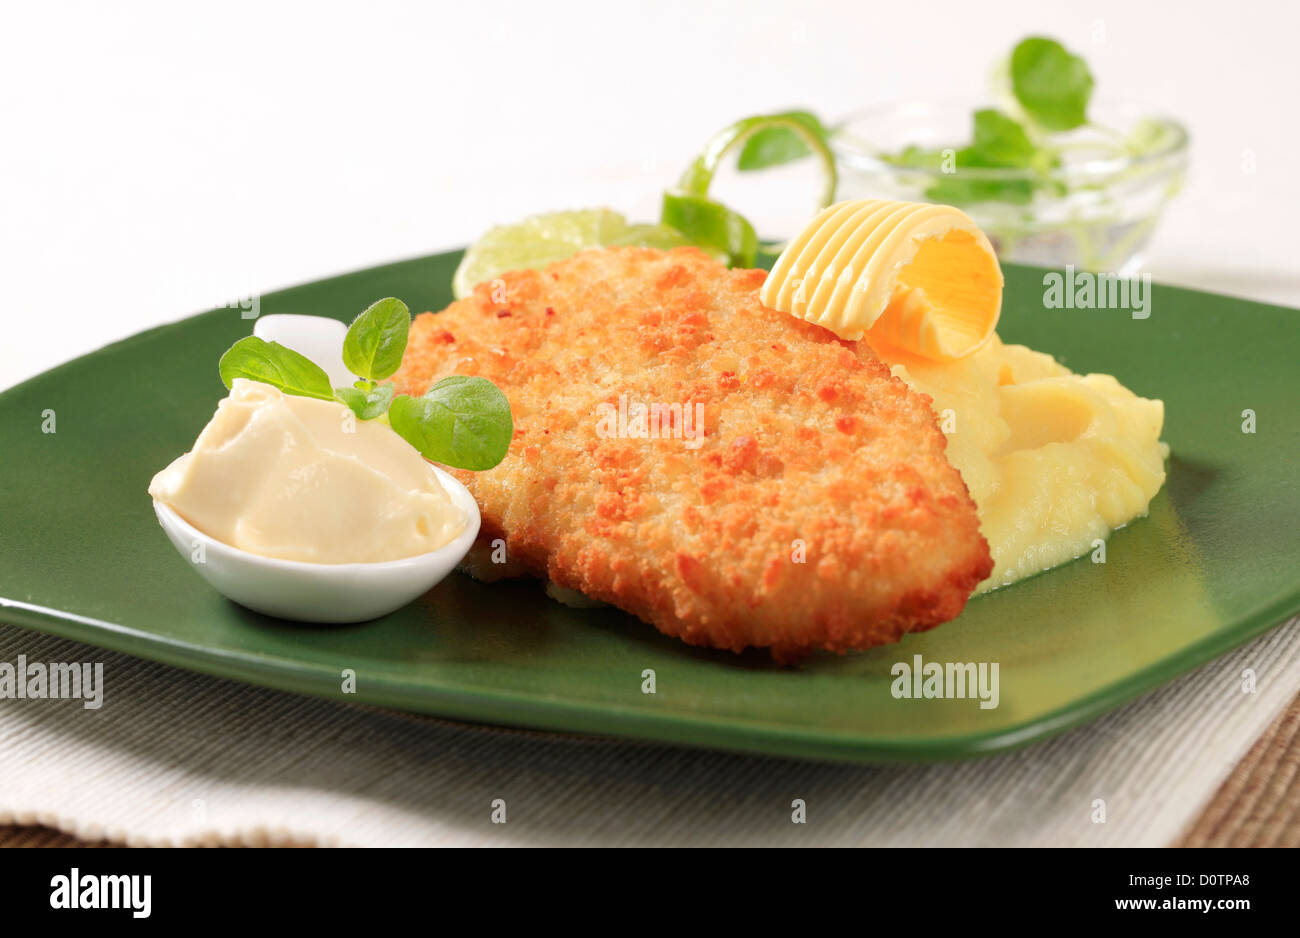 Fried breaded fish served with mashed potato - Stock Image